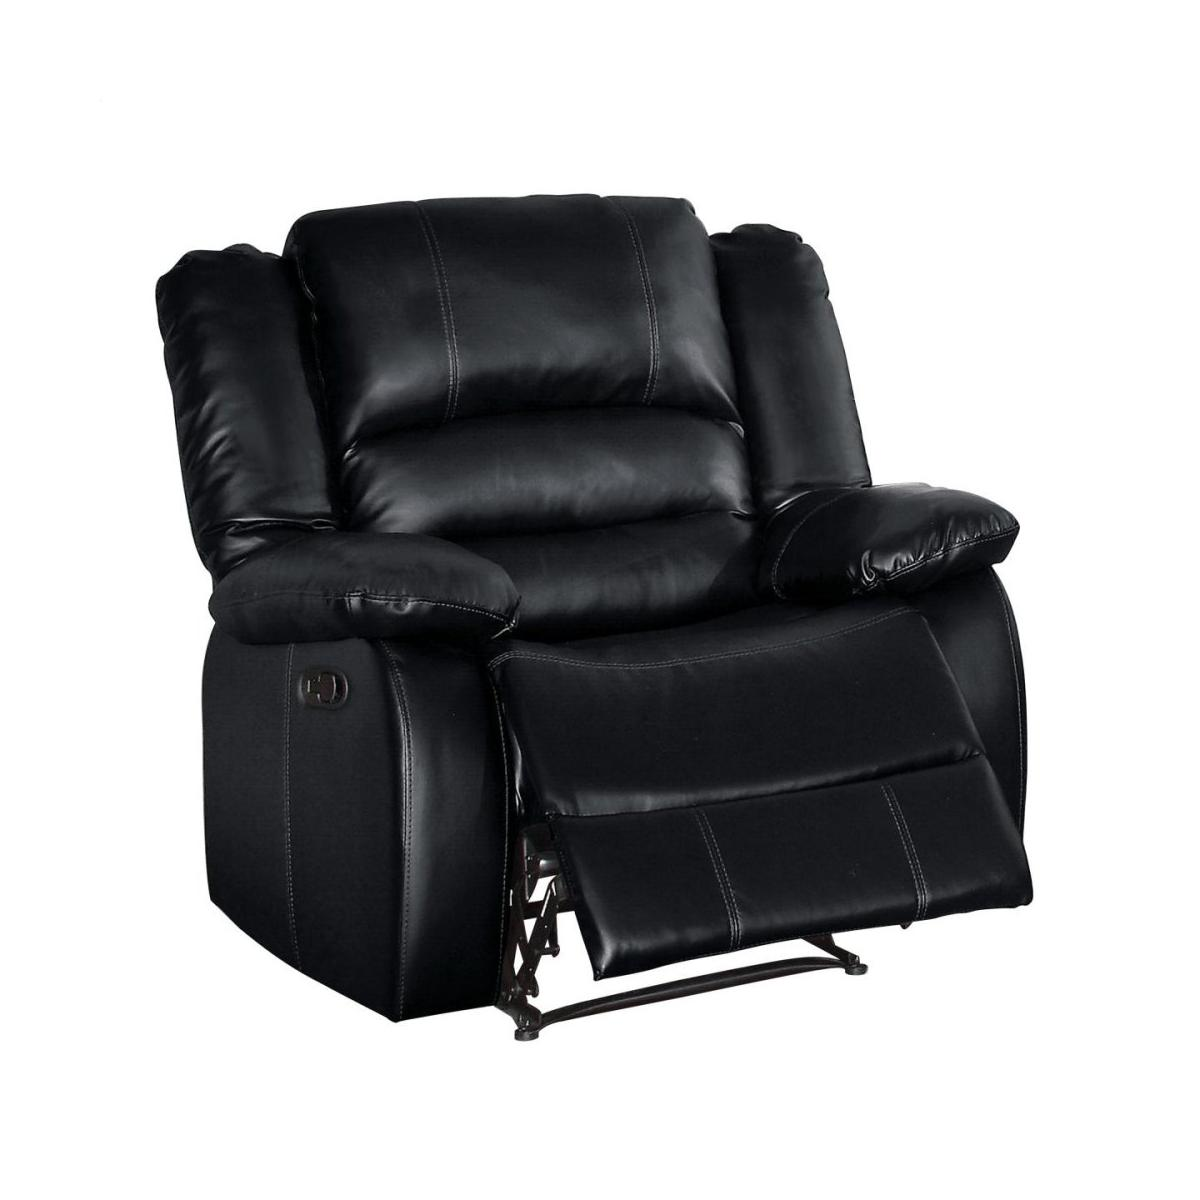 Reclining Chair